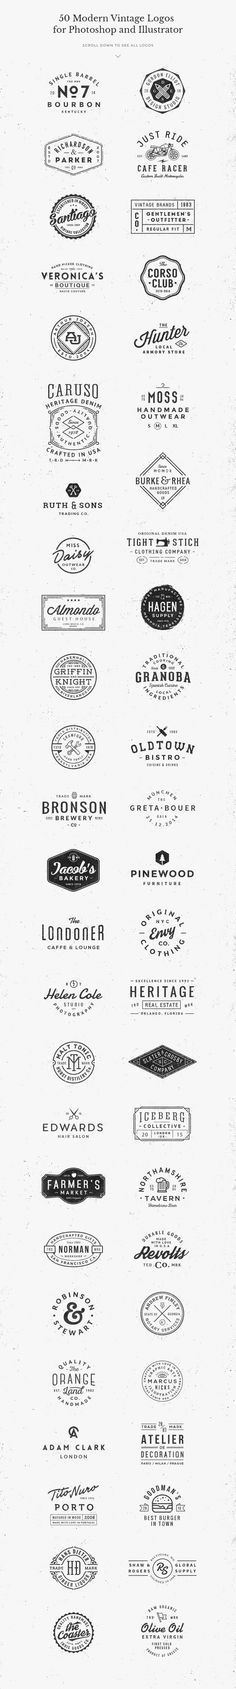 With this bundle you have a chance to get yourself all 5 logo templates packs and save over 50% off their regular price ($60). That's 50 vector logo templates that you can use for branding projects, labels, apparel design, typography pieces and more. They're all fully editable with only free fonts included!: